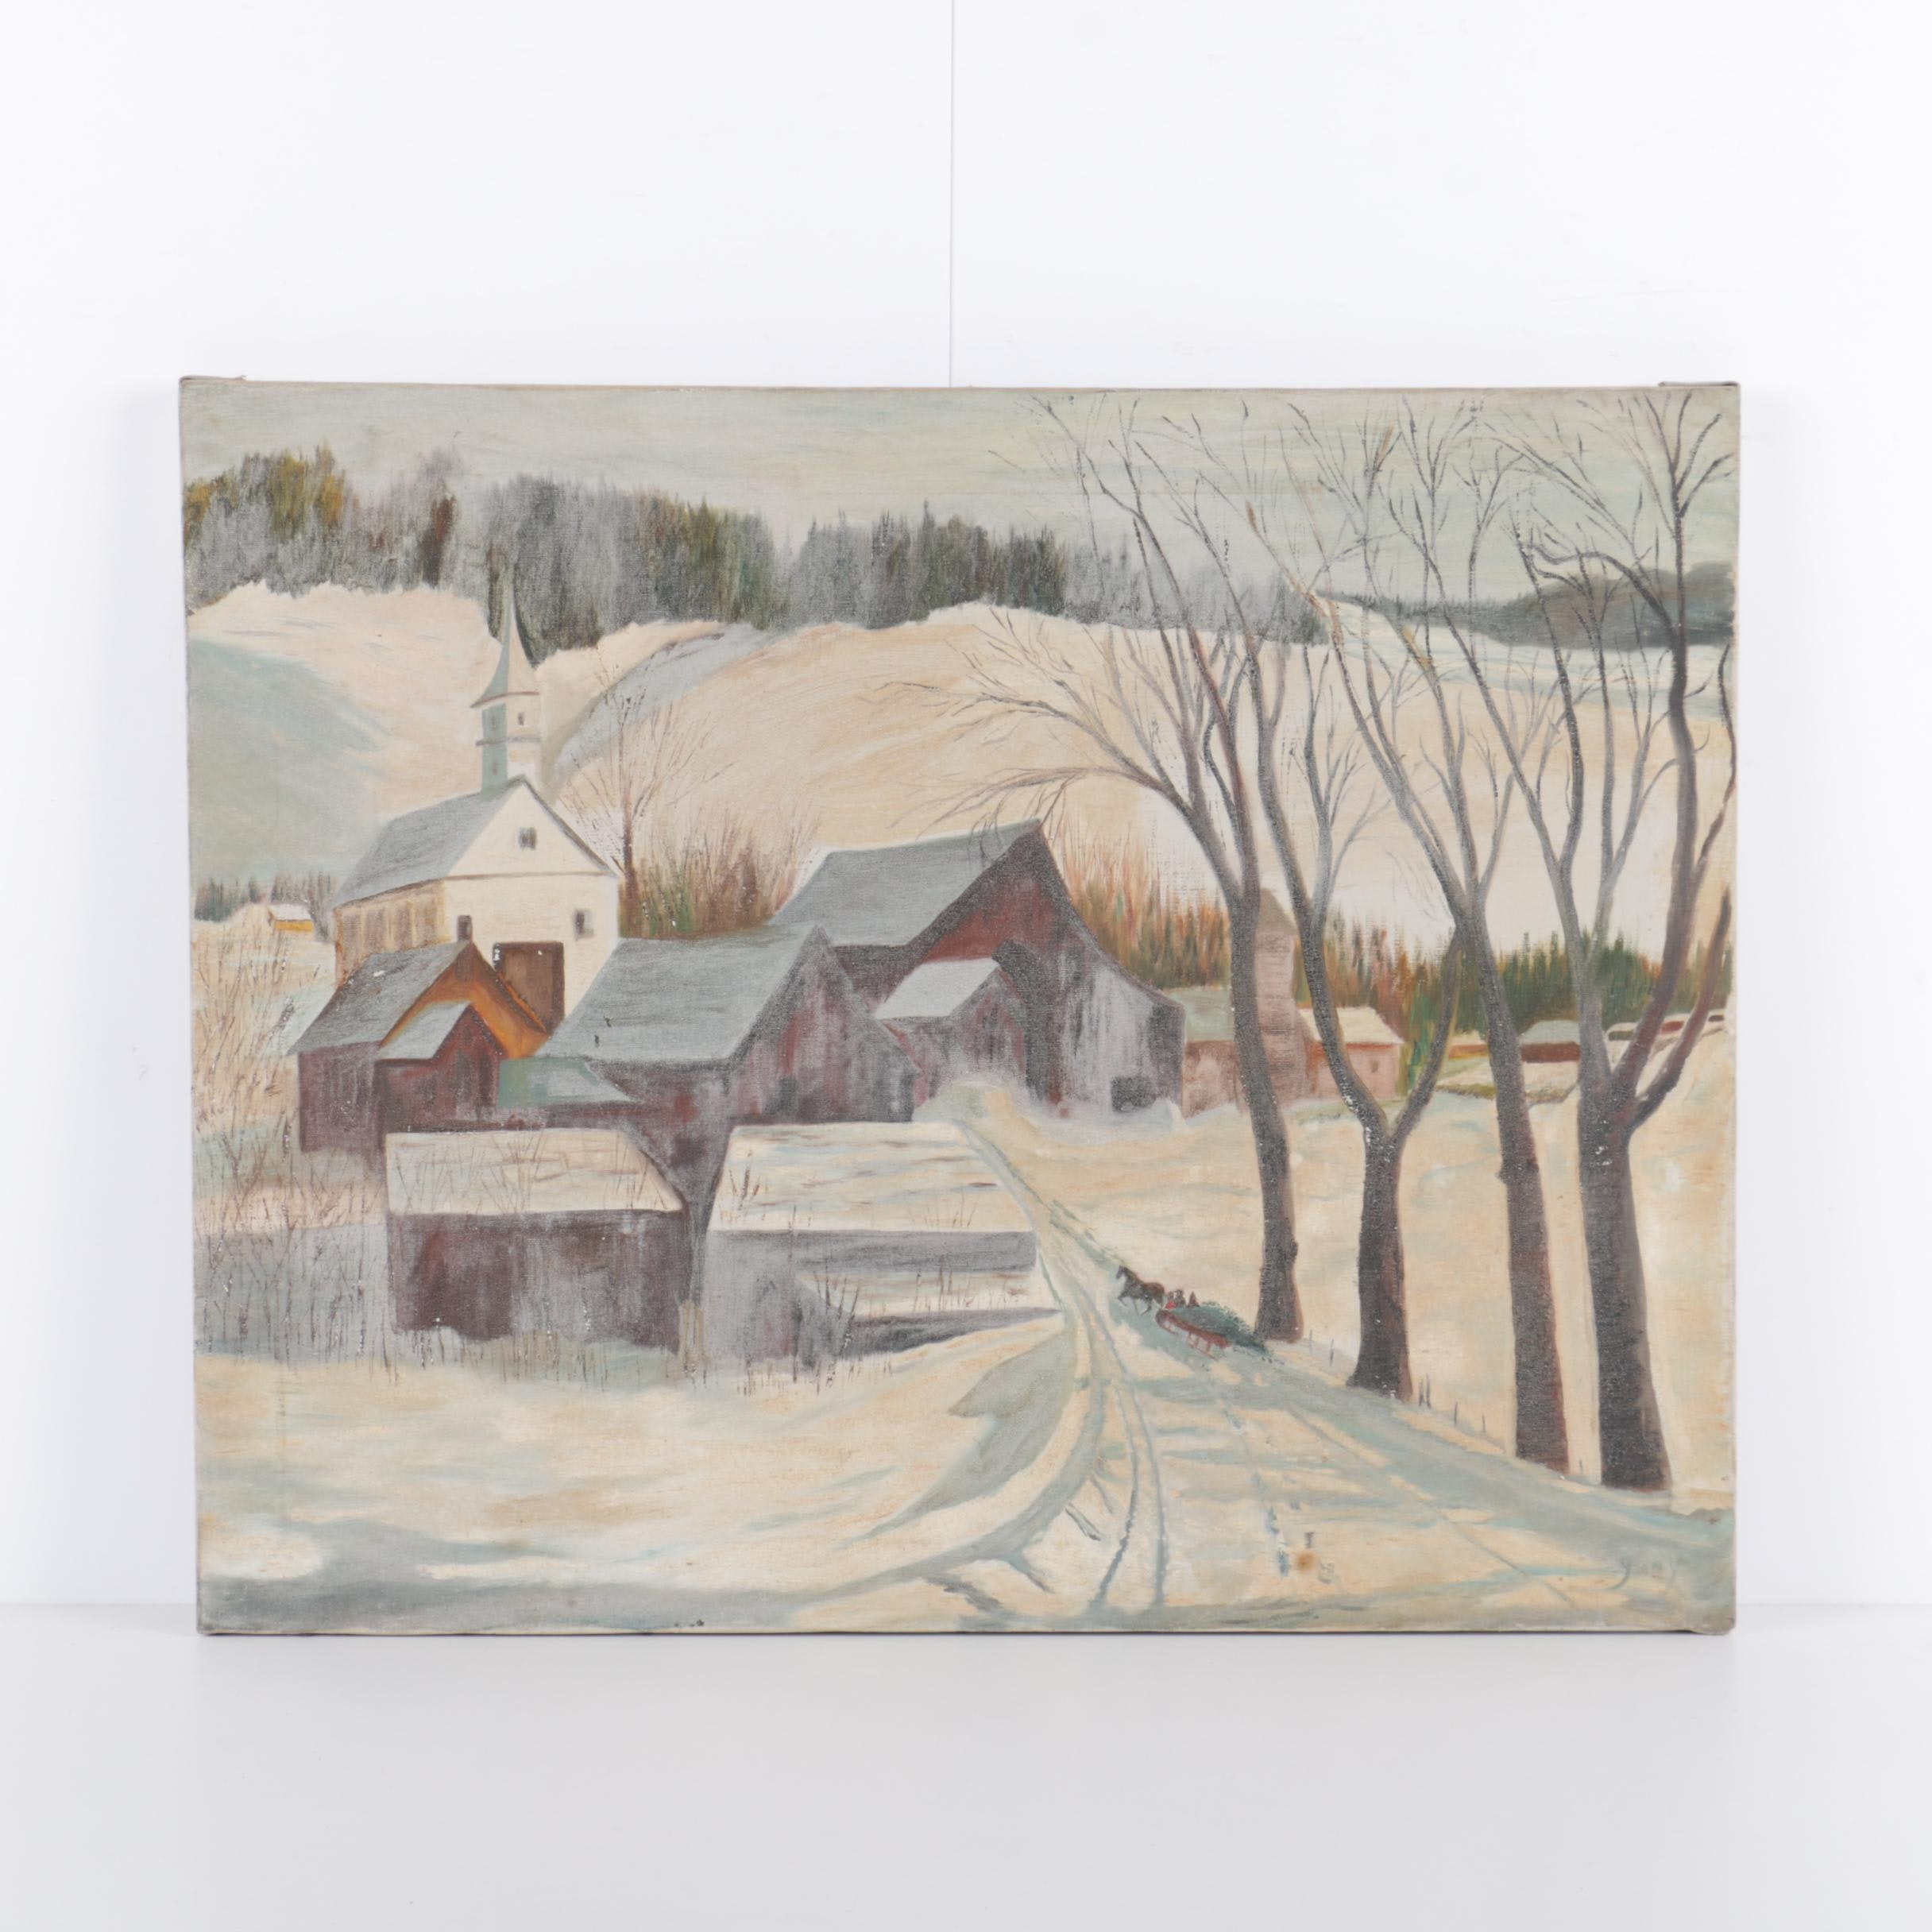 Gary Richard Oil Painting on Canvas of Winter Landscape Scene